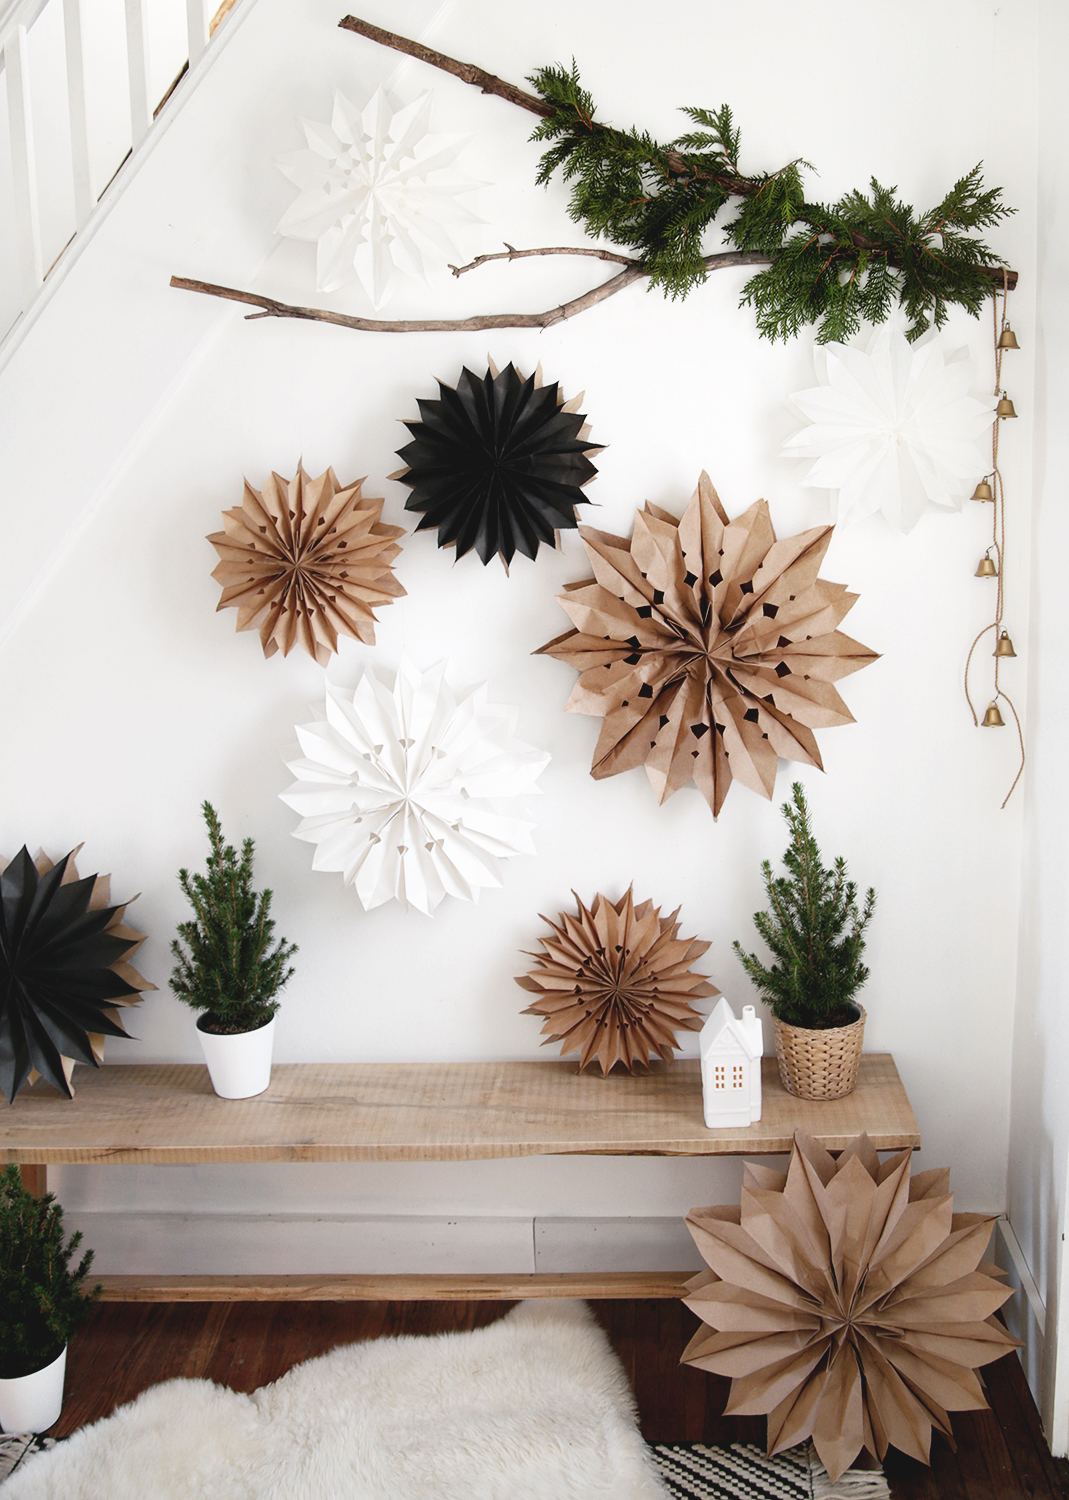 DIY Paper Bag Stars | 50 Awesome DIY Yule Decorations and Craft Ideas You Can Make for the Winter Solstice